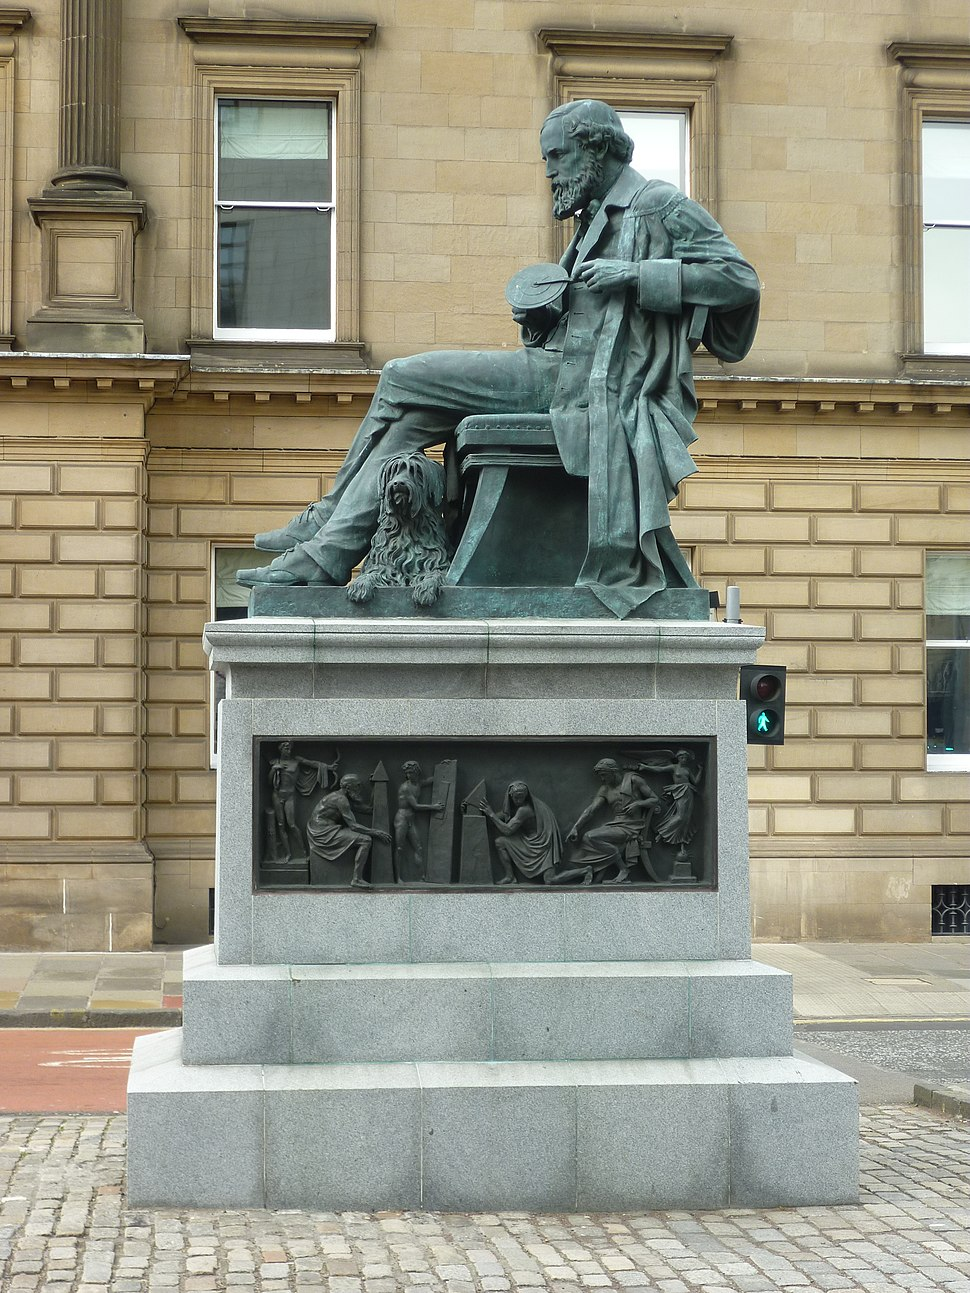 James Clerk Maxwell statue in George Street, Edinburgh